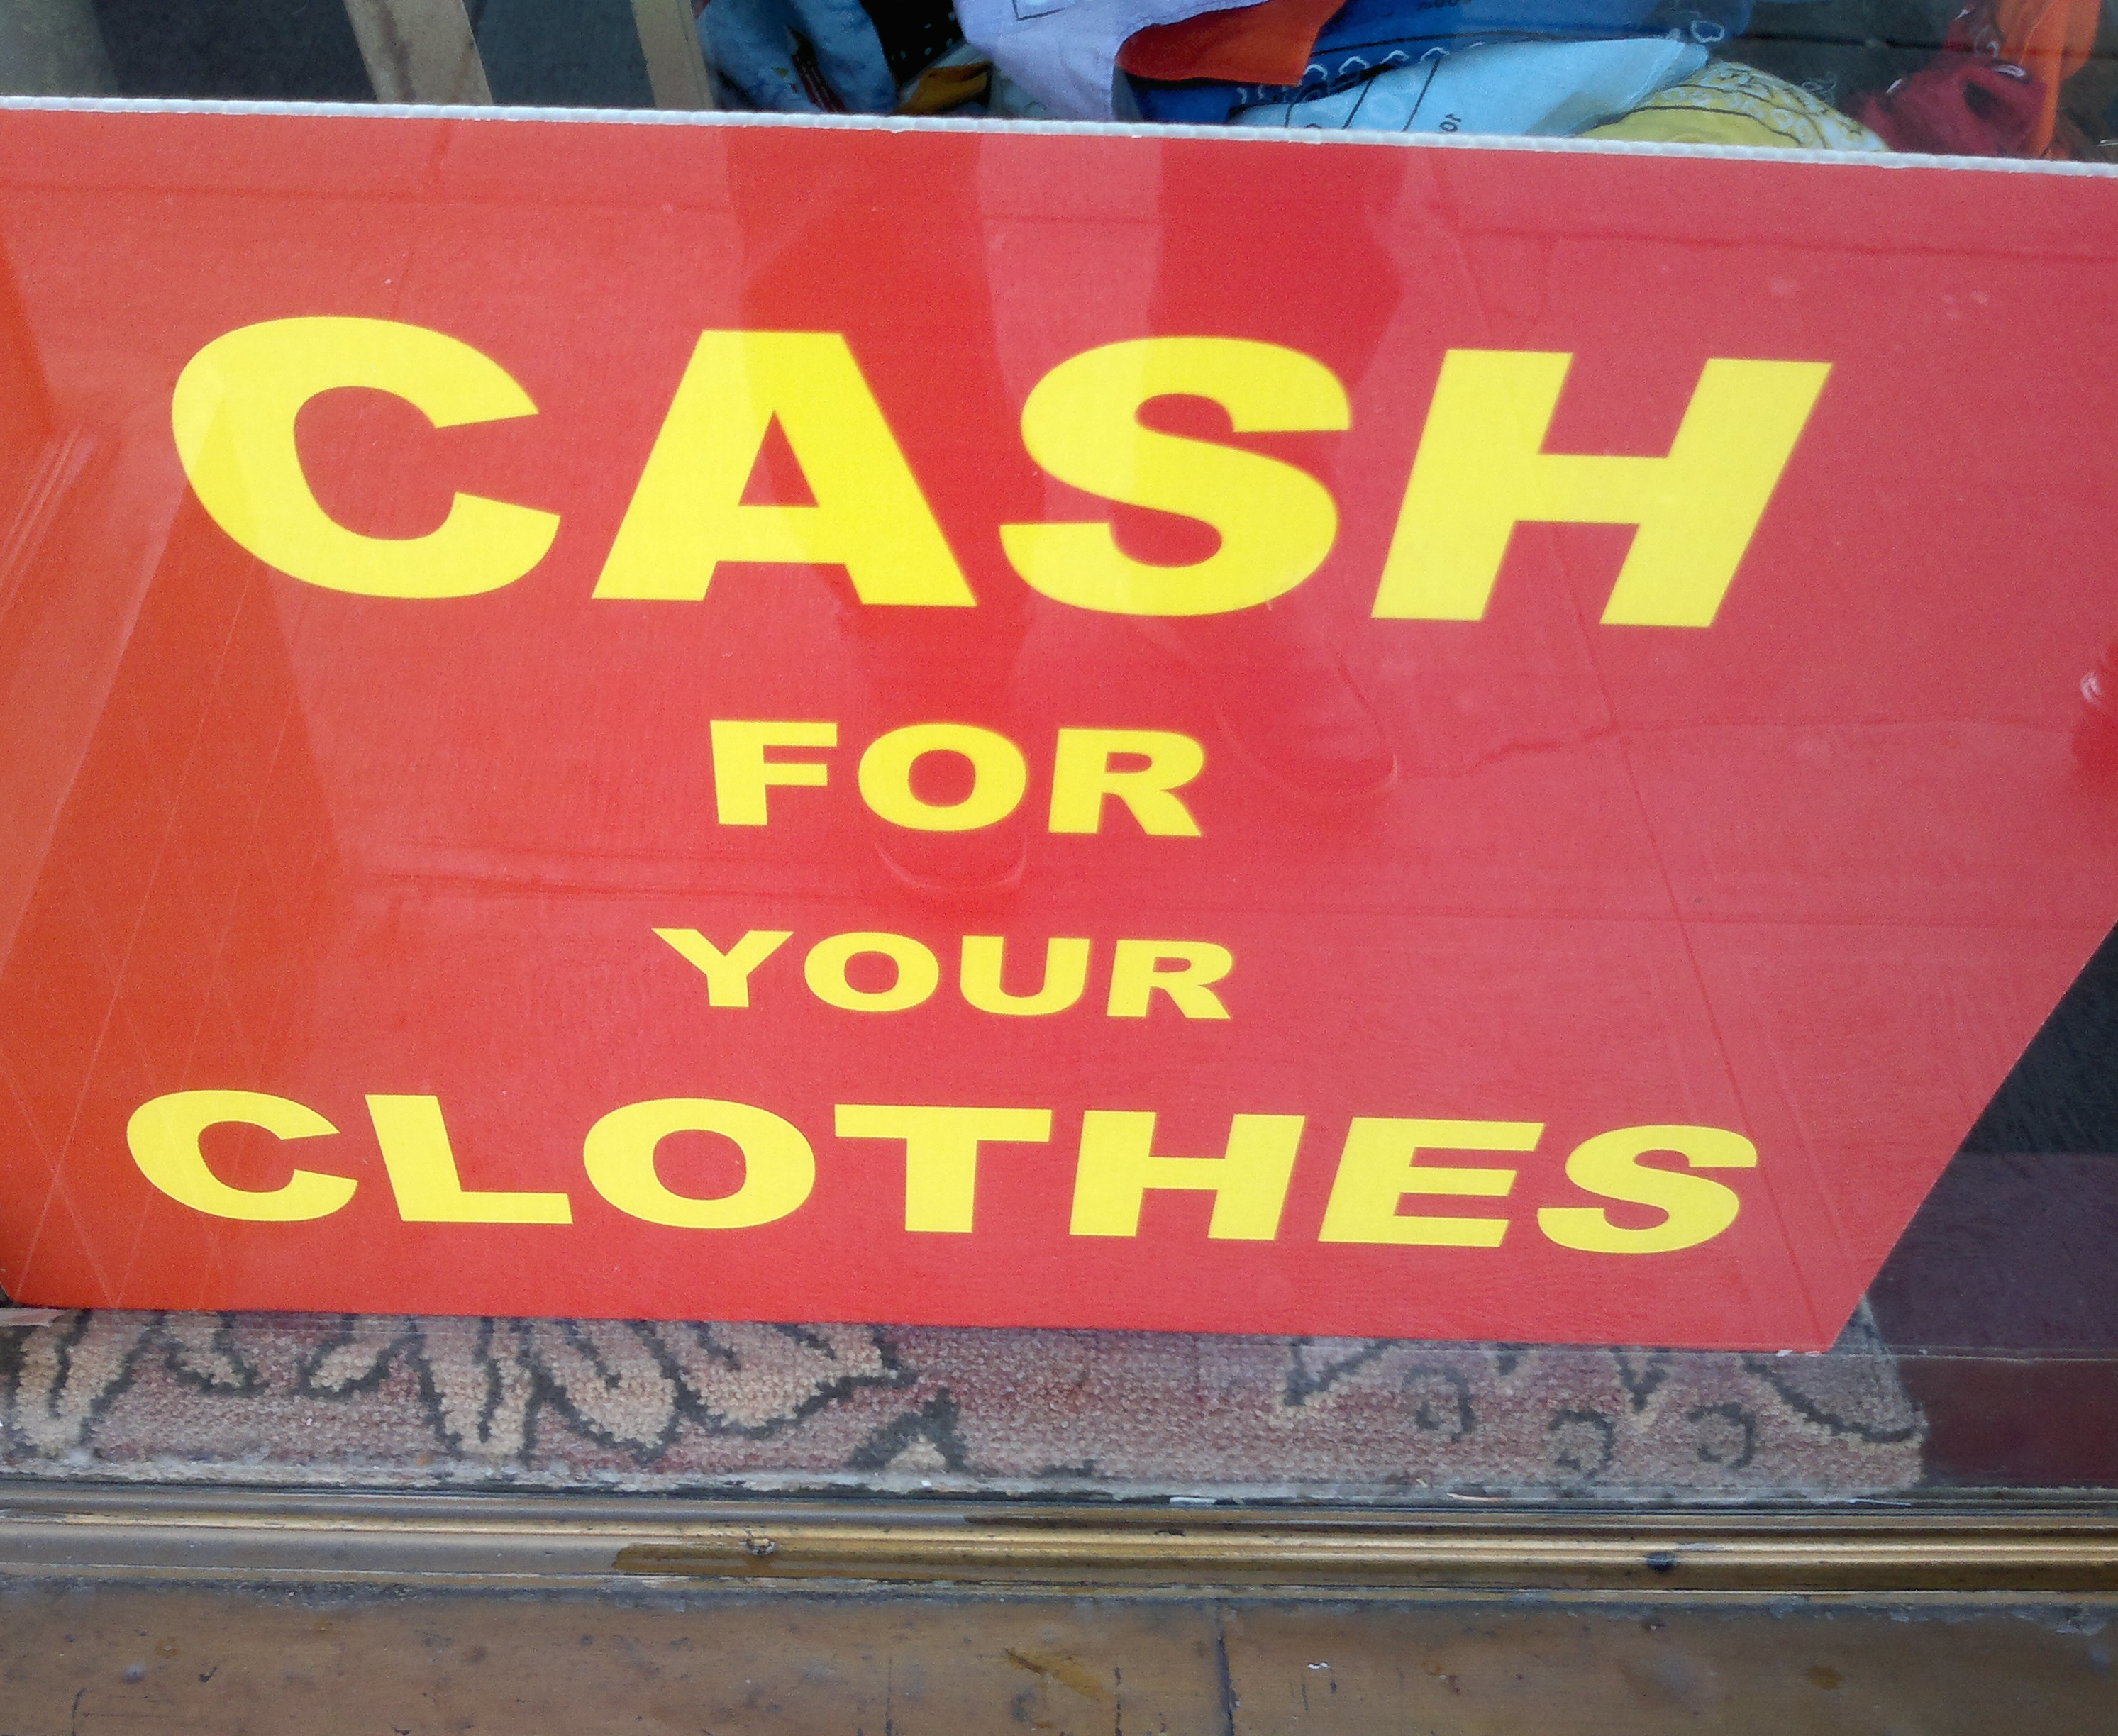 Recycle or sell clothes for cash with Cash For Clothes Ediltex - we offer best prices and community benefits. Cash For Clothes Ediltex. Menu. Home. What We Buy. Our Shops. Cash for Clothes in Bedwas. Cash For Clothes In Bridgend. Cash For Clothes In Bristol, BS4 1UL. Cash for Clothes in Bristol, BS7 8TJ.